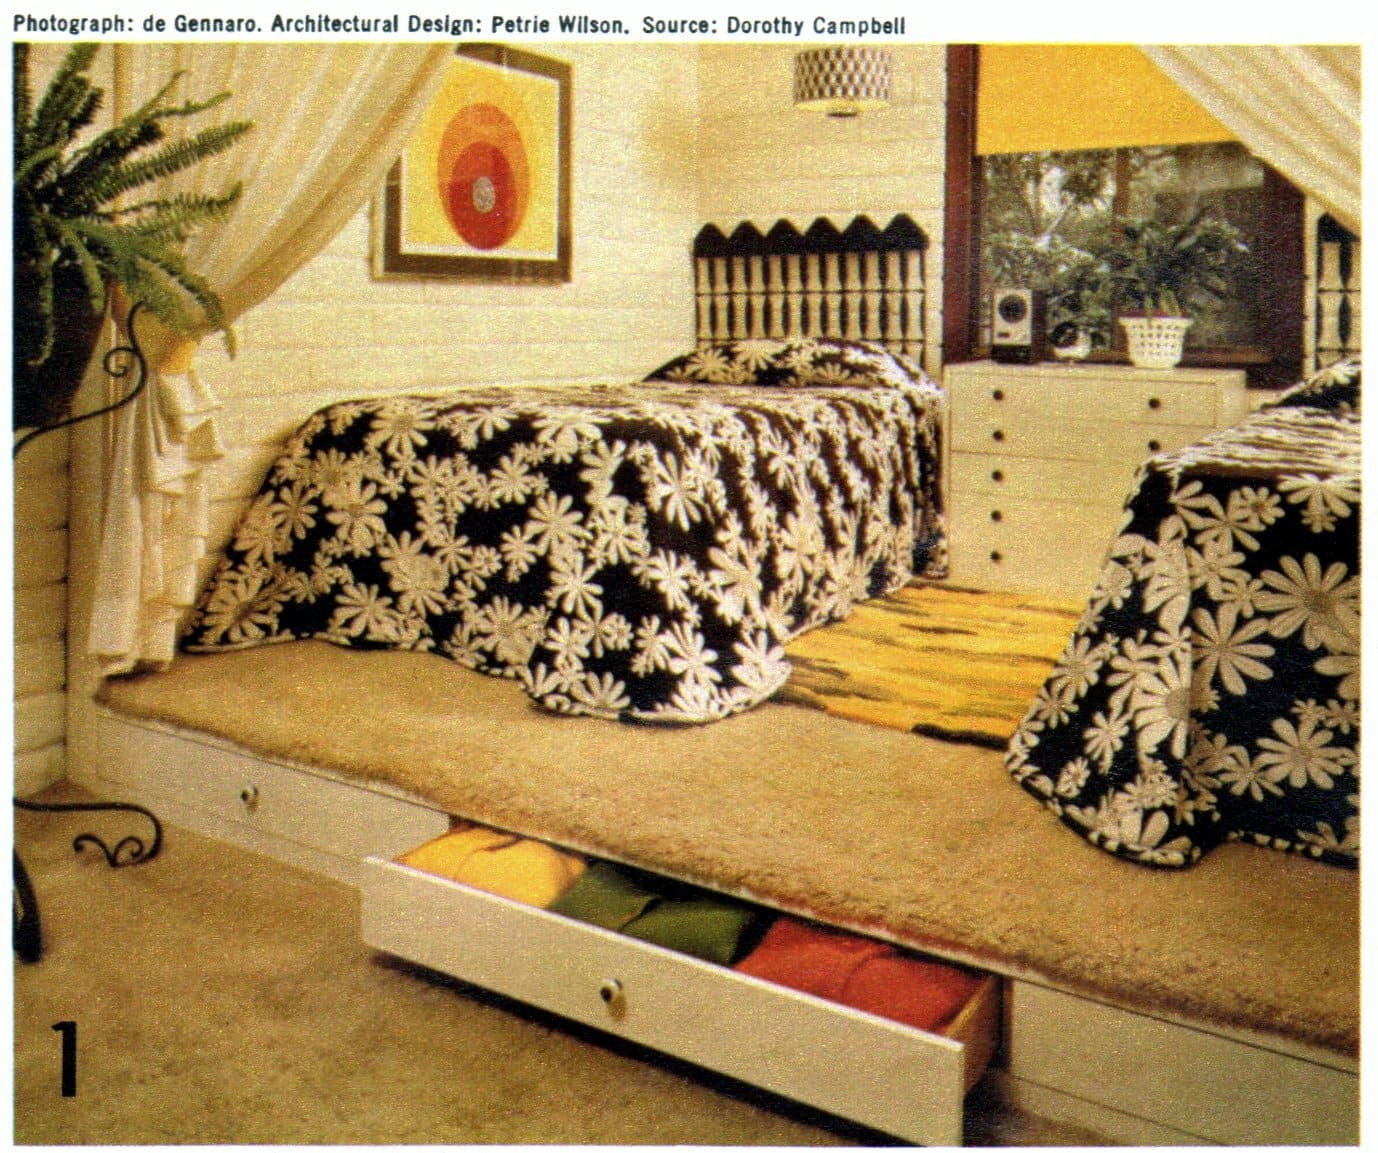 Creative bedroom decor ideas for kids from 1972 (1)